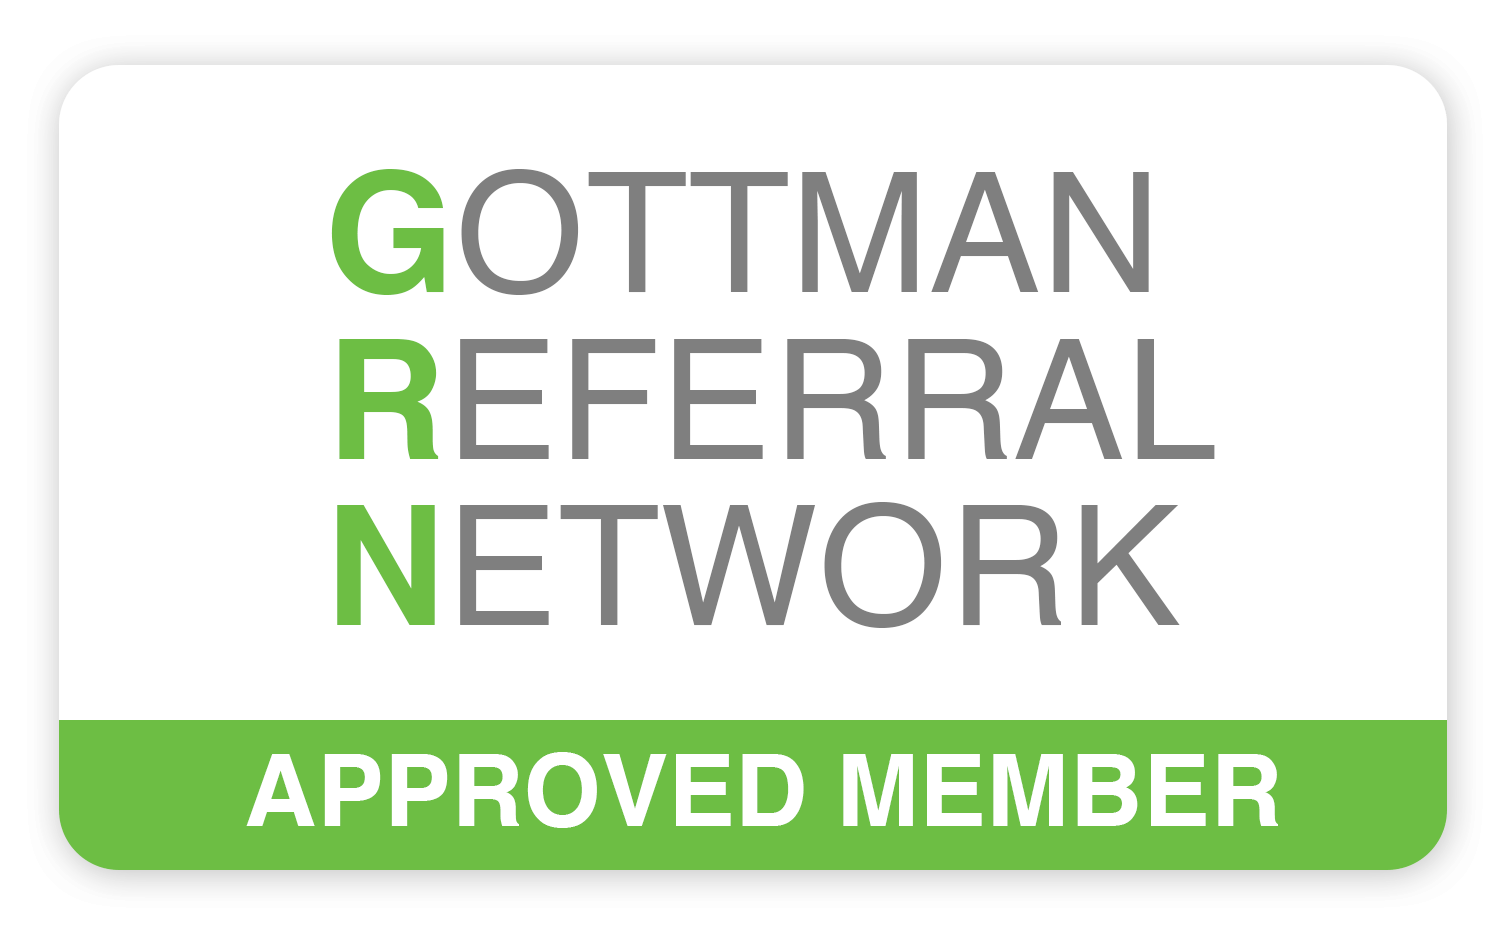 Jennifer Dunkle's profile on the Gottman Referral Network